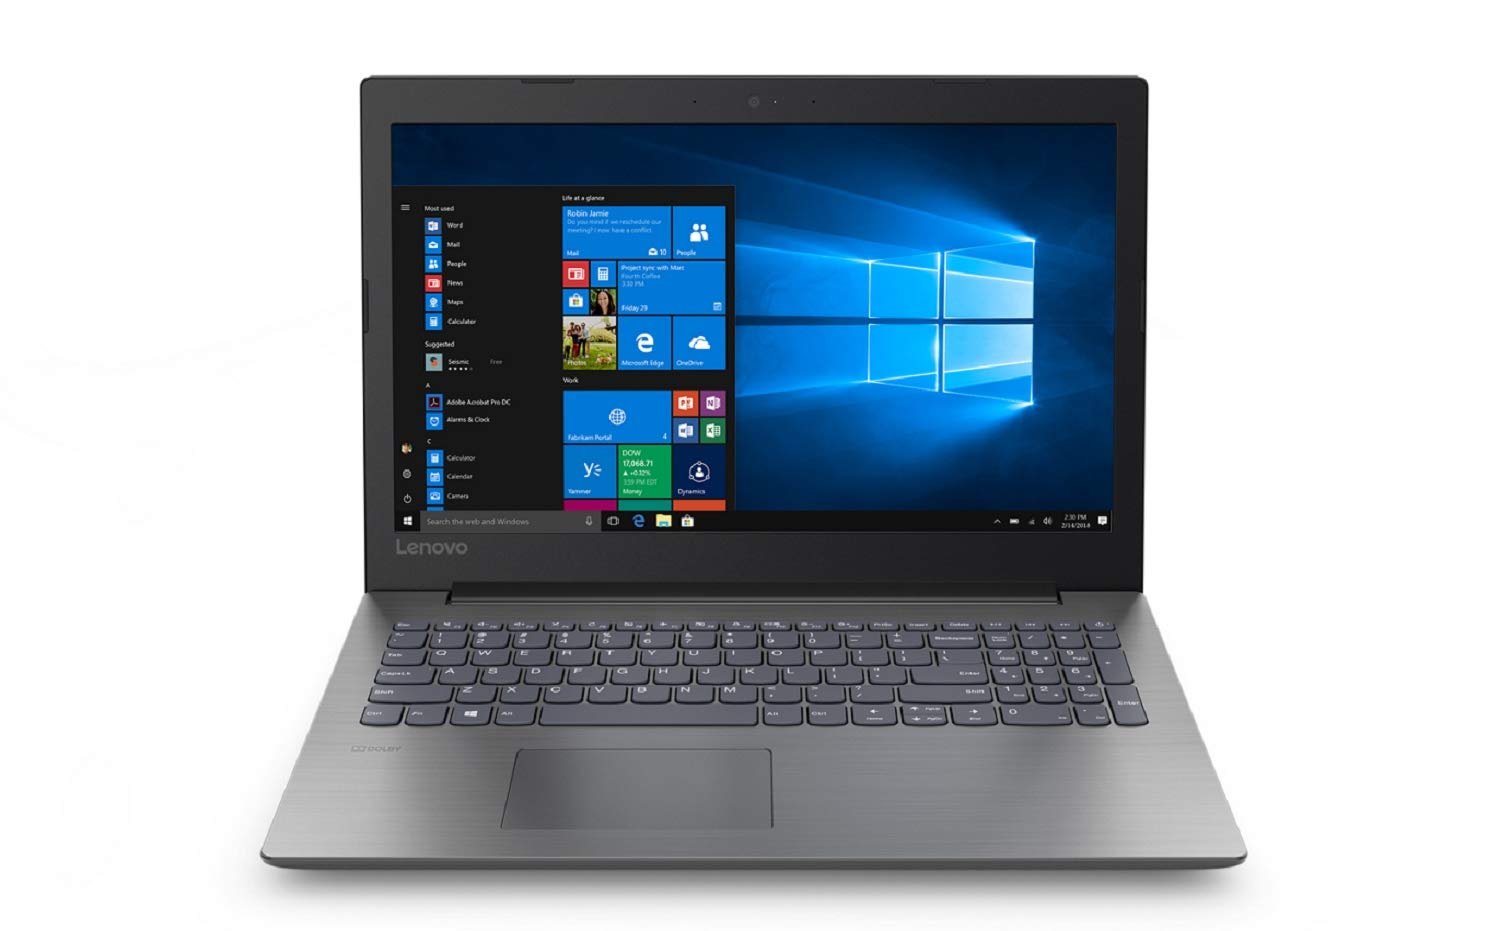 【人気沸騰】 Lenovo Ideapad High Performance 15.6 inch Home and Business Laptop (Intel Celeron N4000 Processor, 16GB RAM, 480GB SSD, 15.6